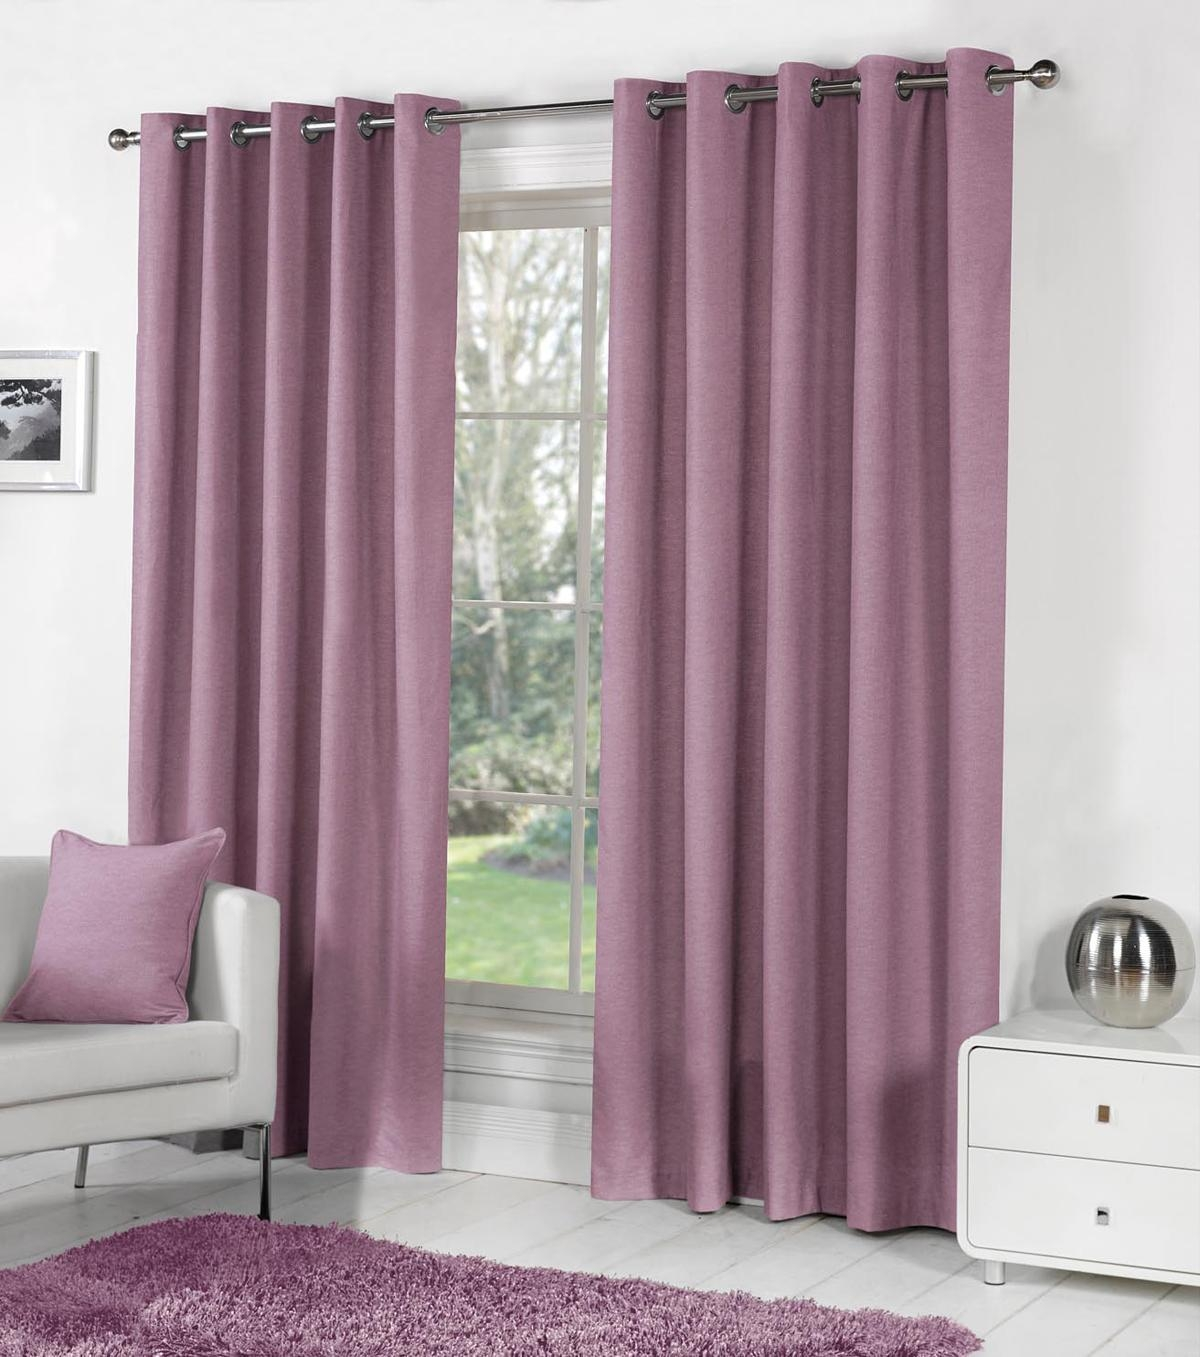 25 Collection Of 54 Inch Long Curtain Panels Curtain Ideas